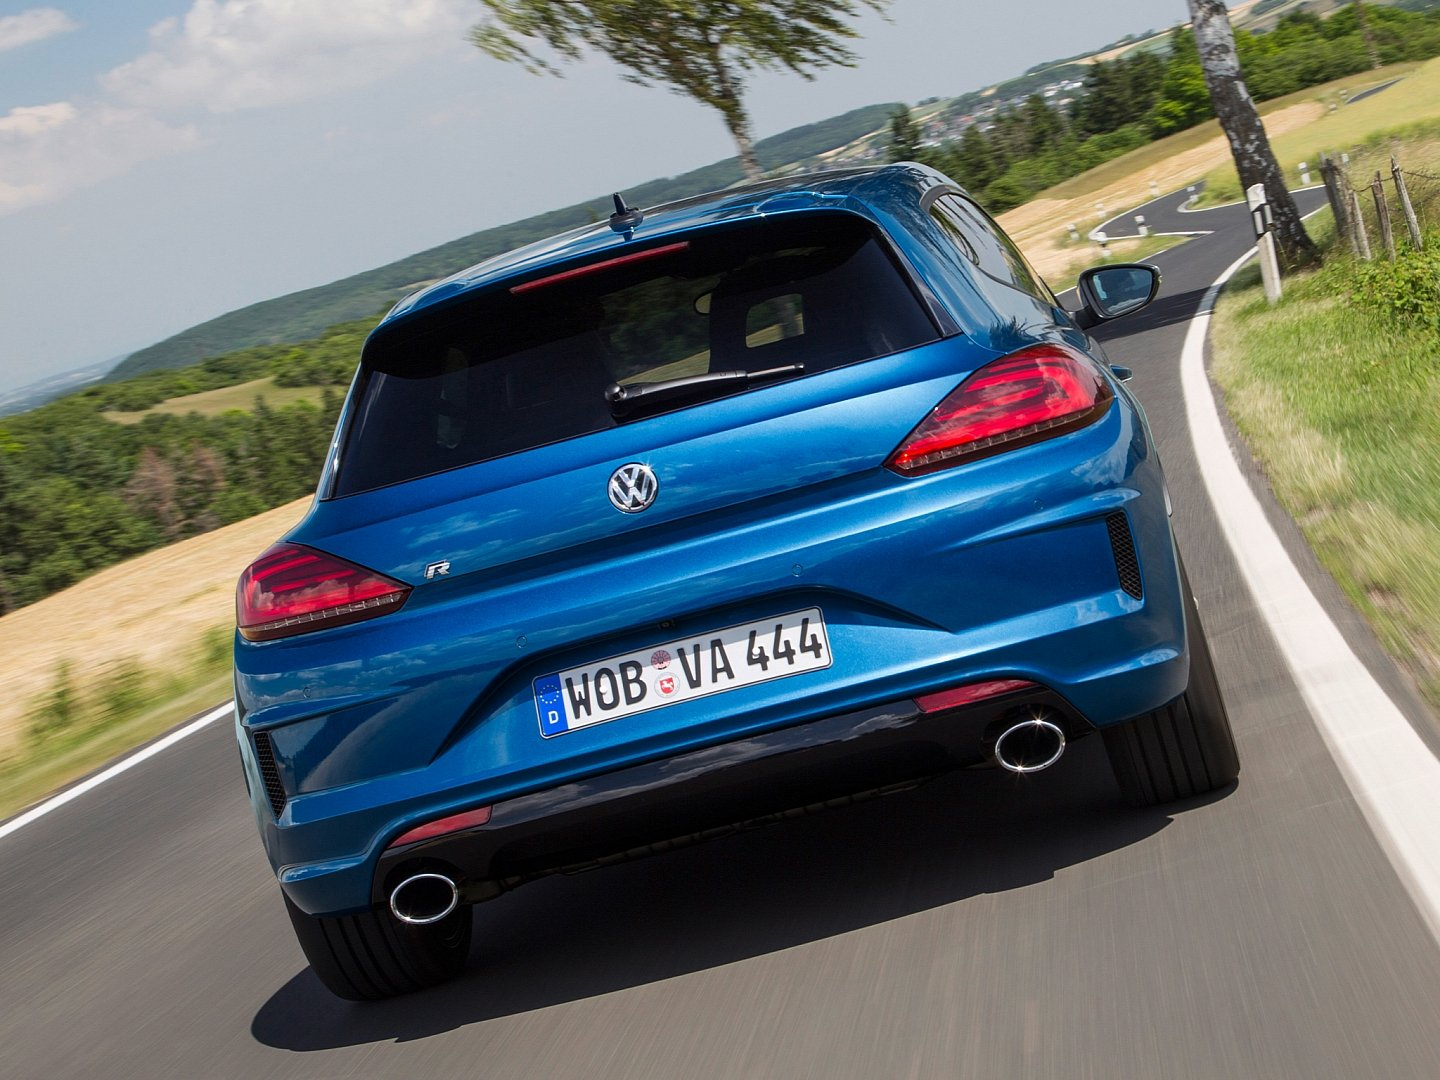 scirocco-radditional-20-ps-accelerates-06-seconds-faster-to-100-km-h-than-its-predecessor-1080p-8